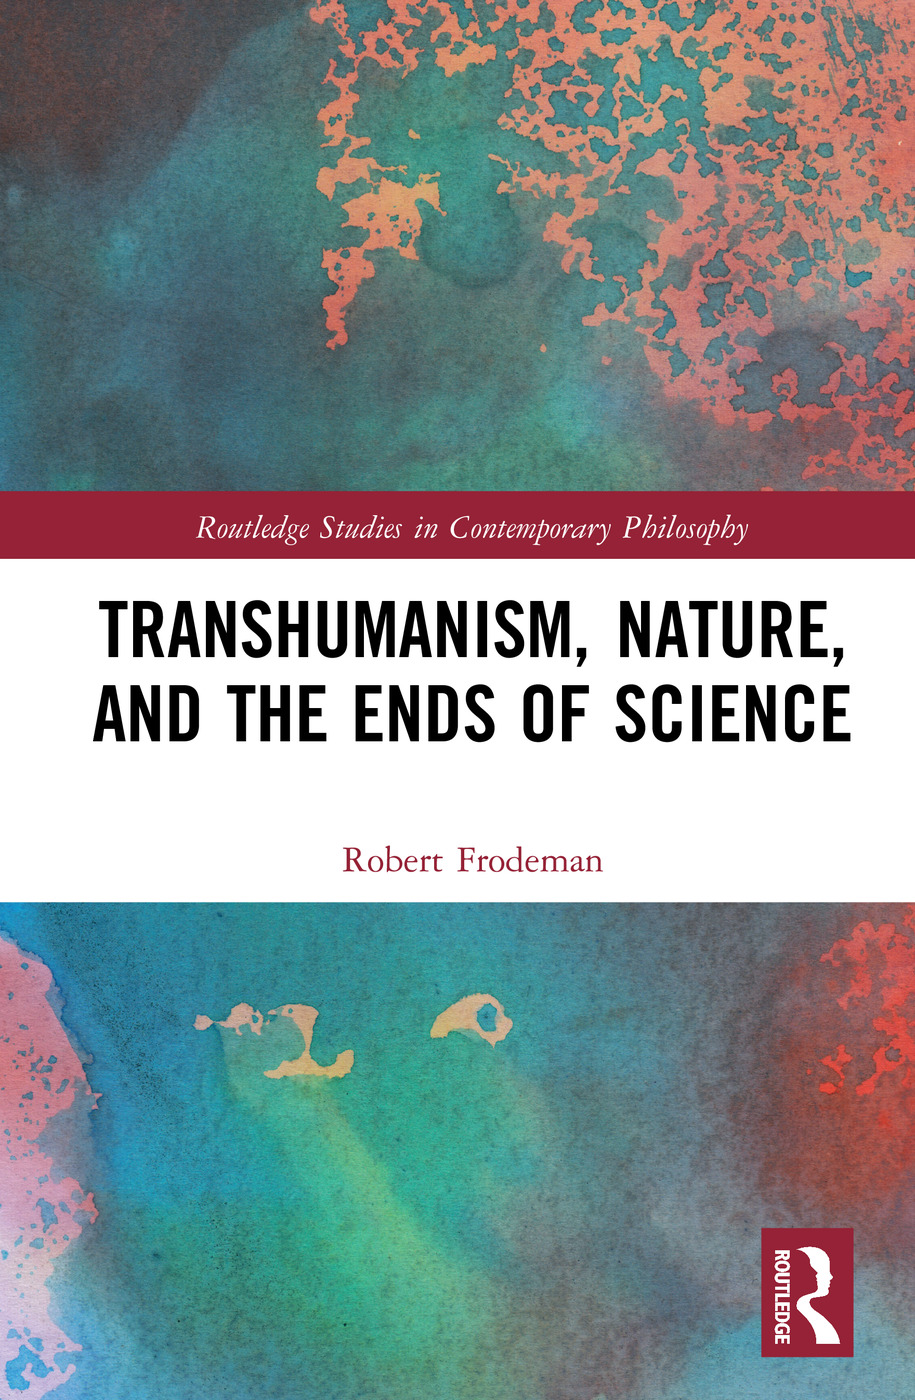 Transhumanism, Nature, and the Ends of Science book cover